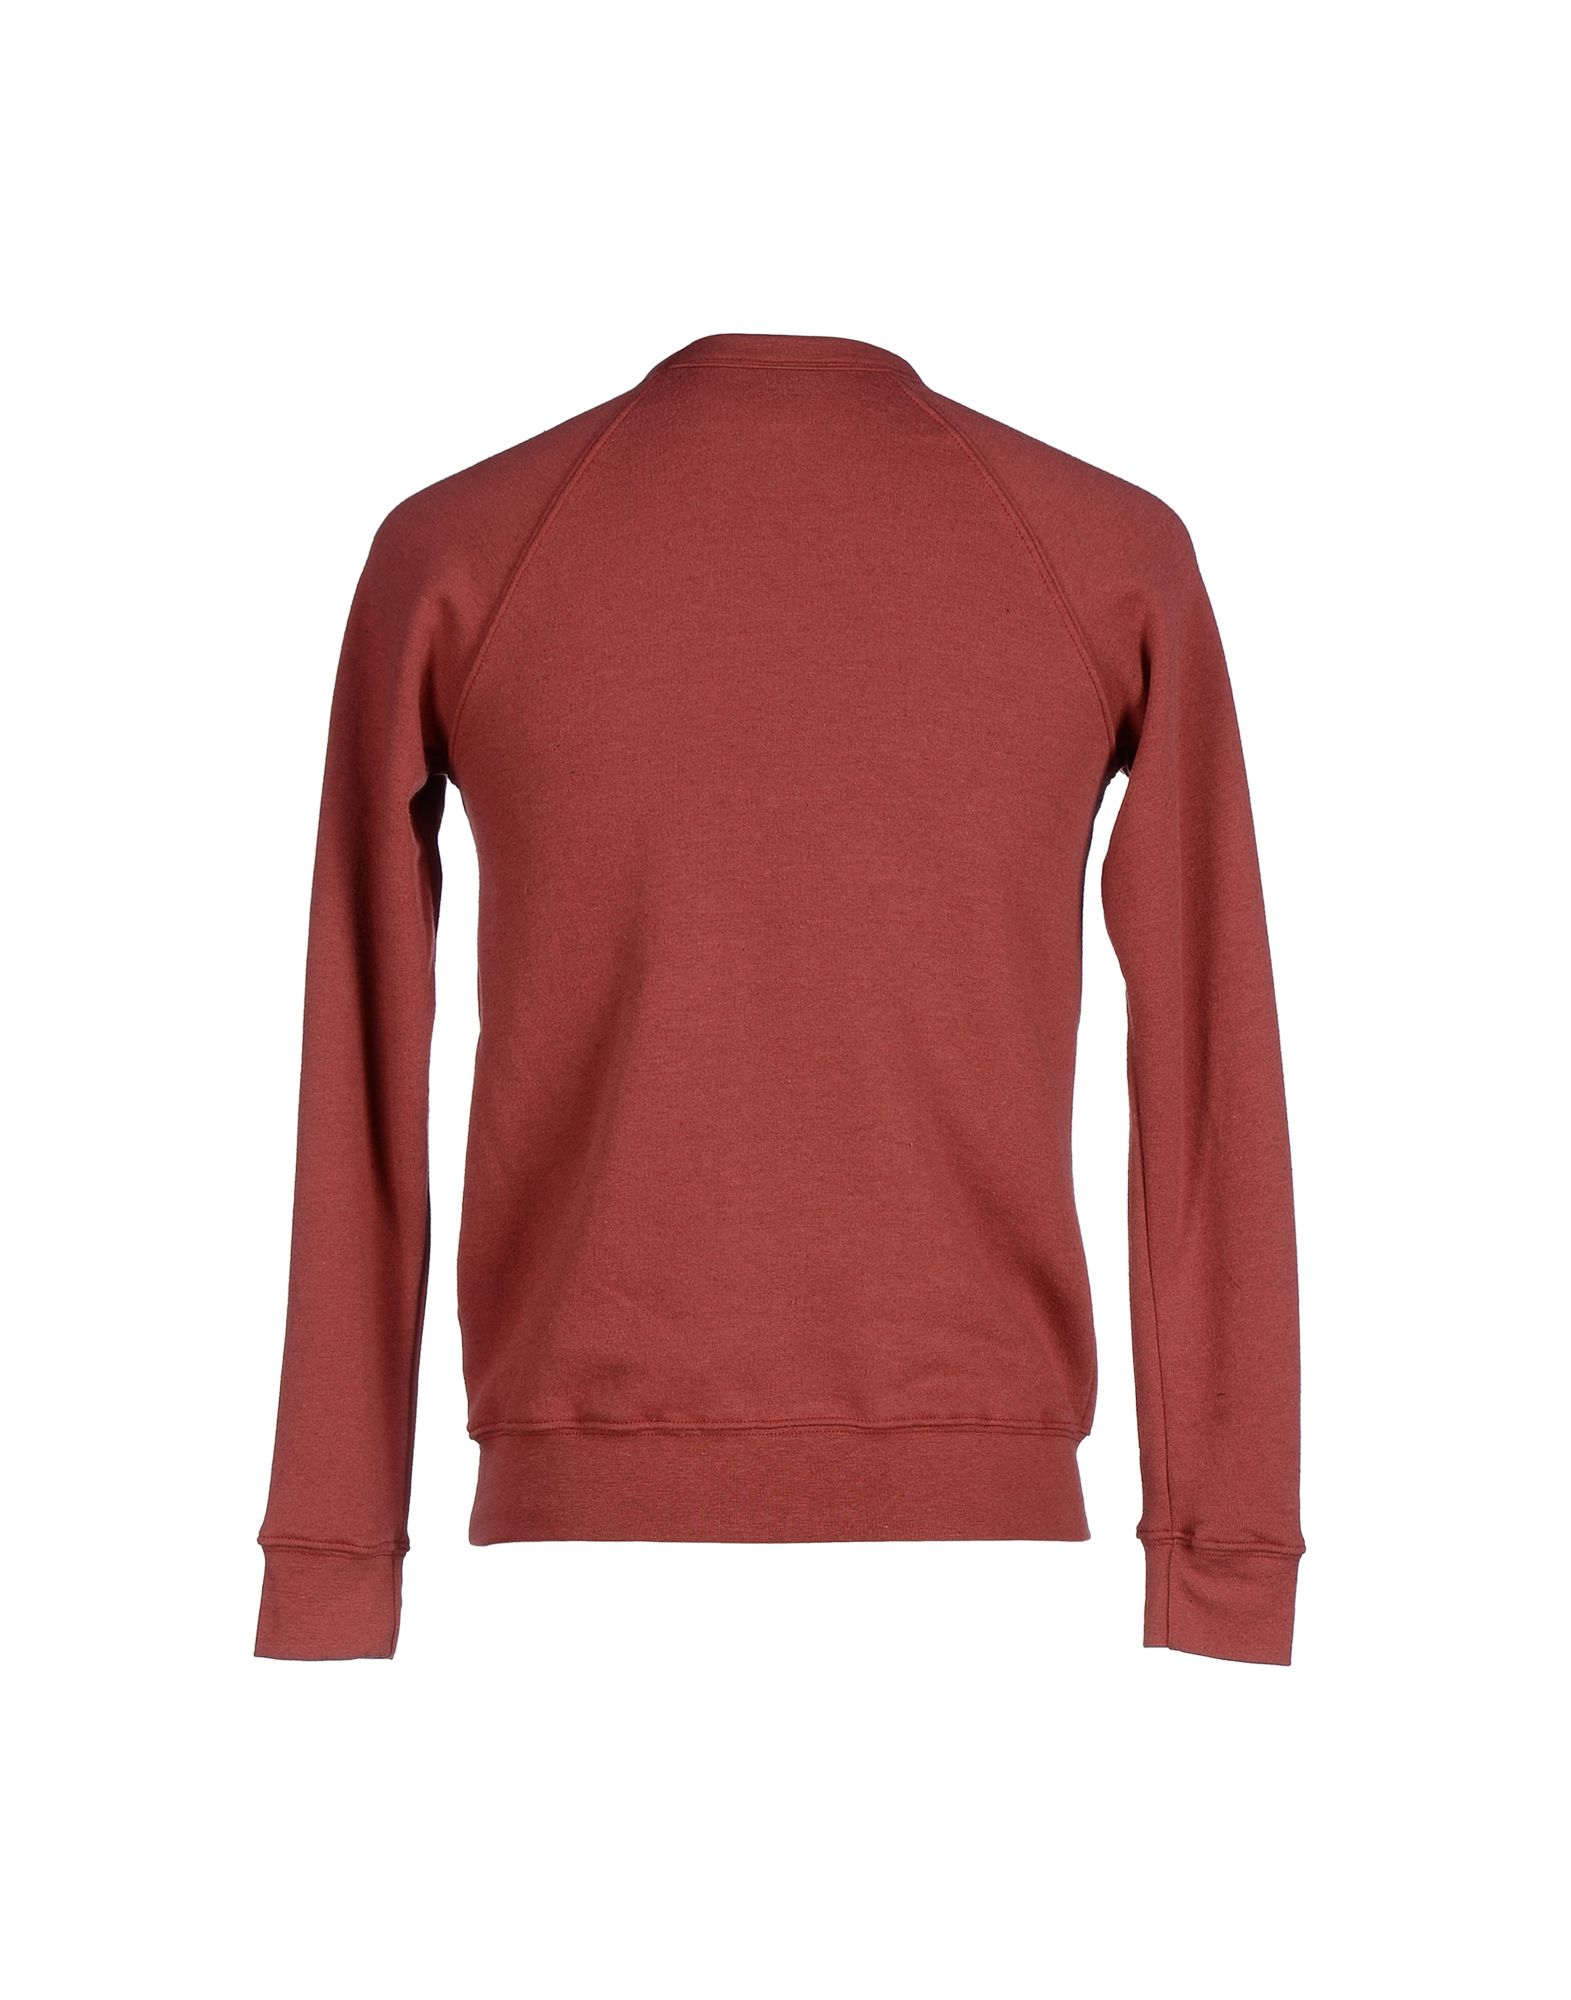 Obey Sweatshirt in Red for Men | Lyst